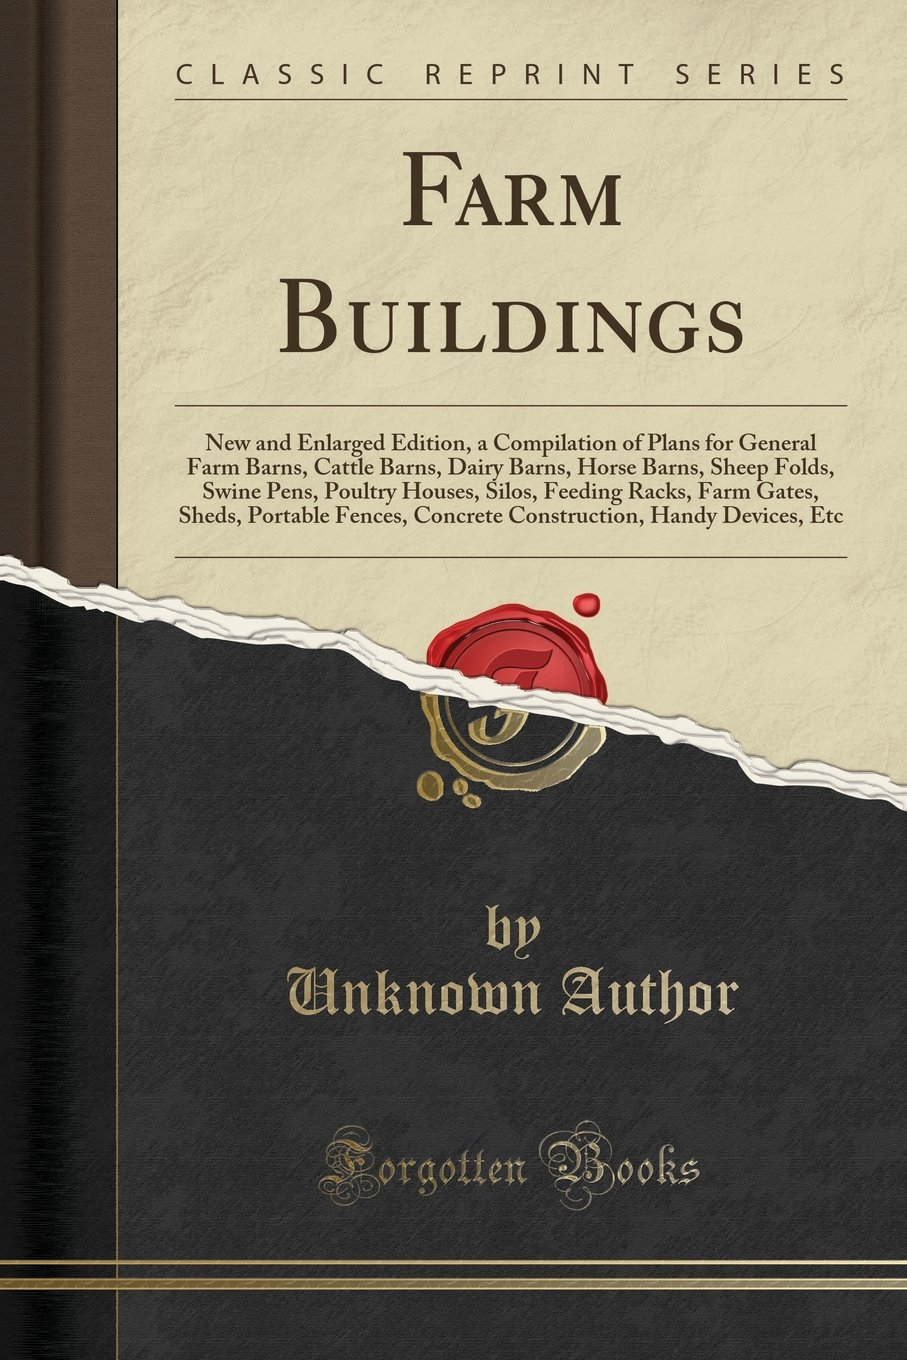 Farm Buildings: New and Enlarged Edition, a Compilation of Plans for General Farm Barns, Cattle Barns, Dairy Barns, Horse Barns, Sheep Folds, Swine Portable Fences, Concrete Construction, Hand